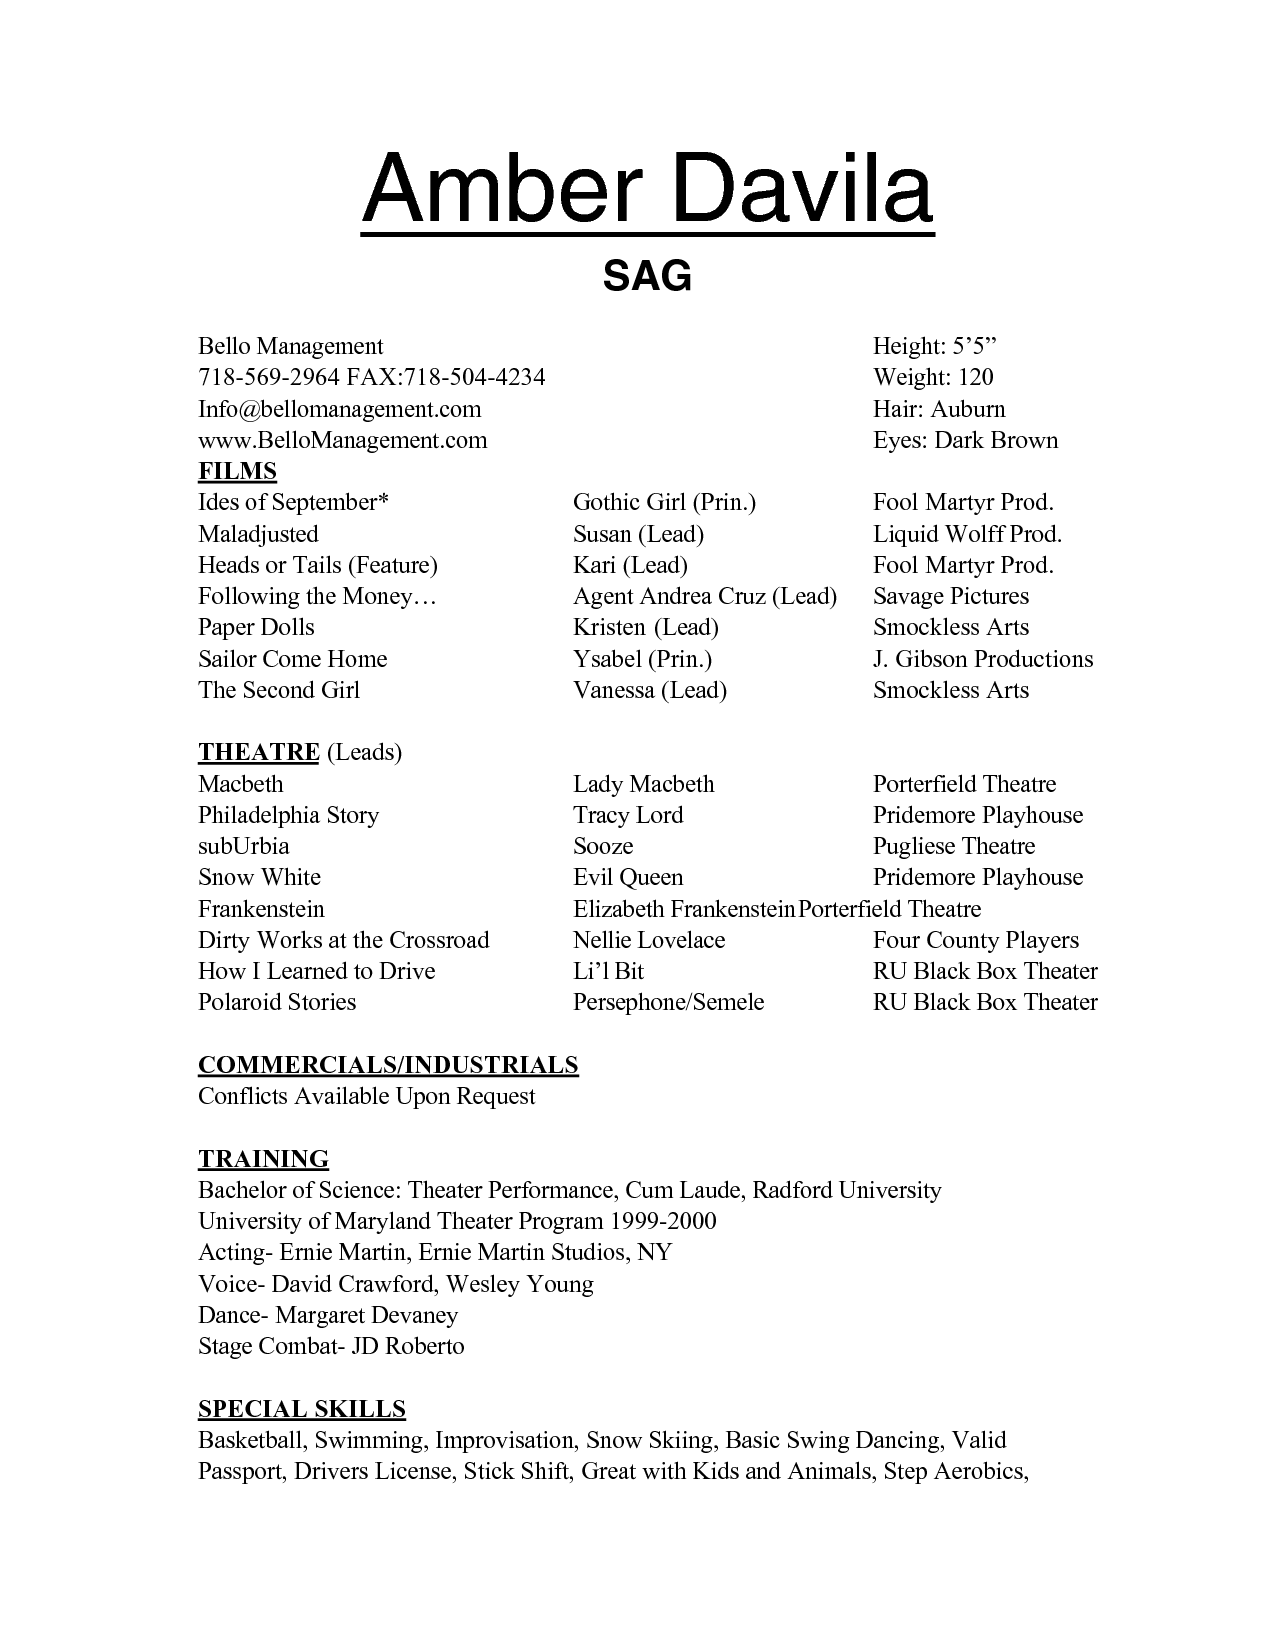 talent resume template free acting resume templates samplebusinessresume 25019